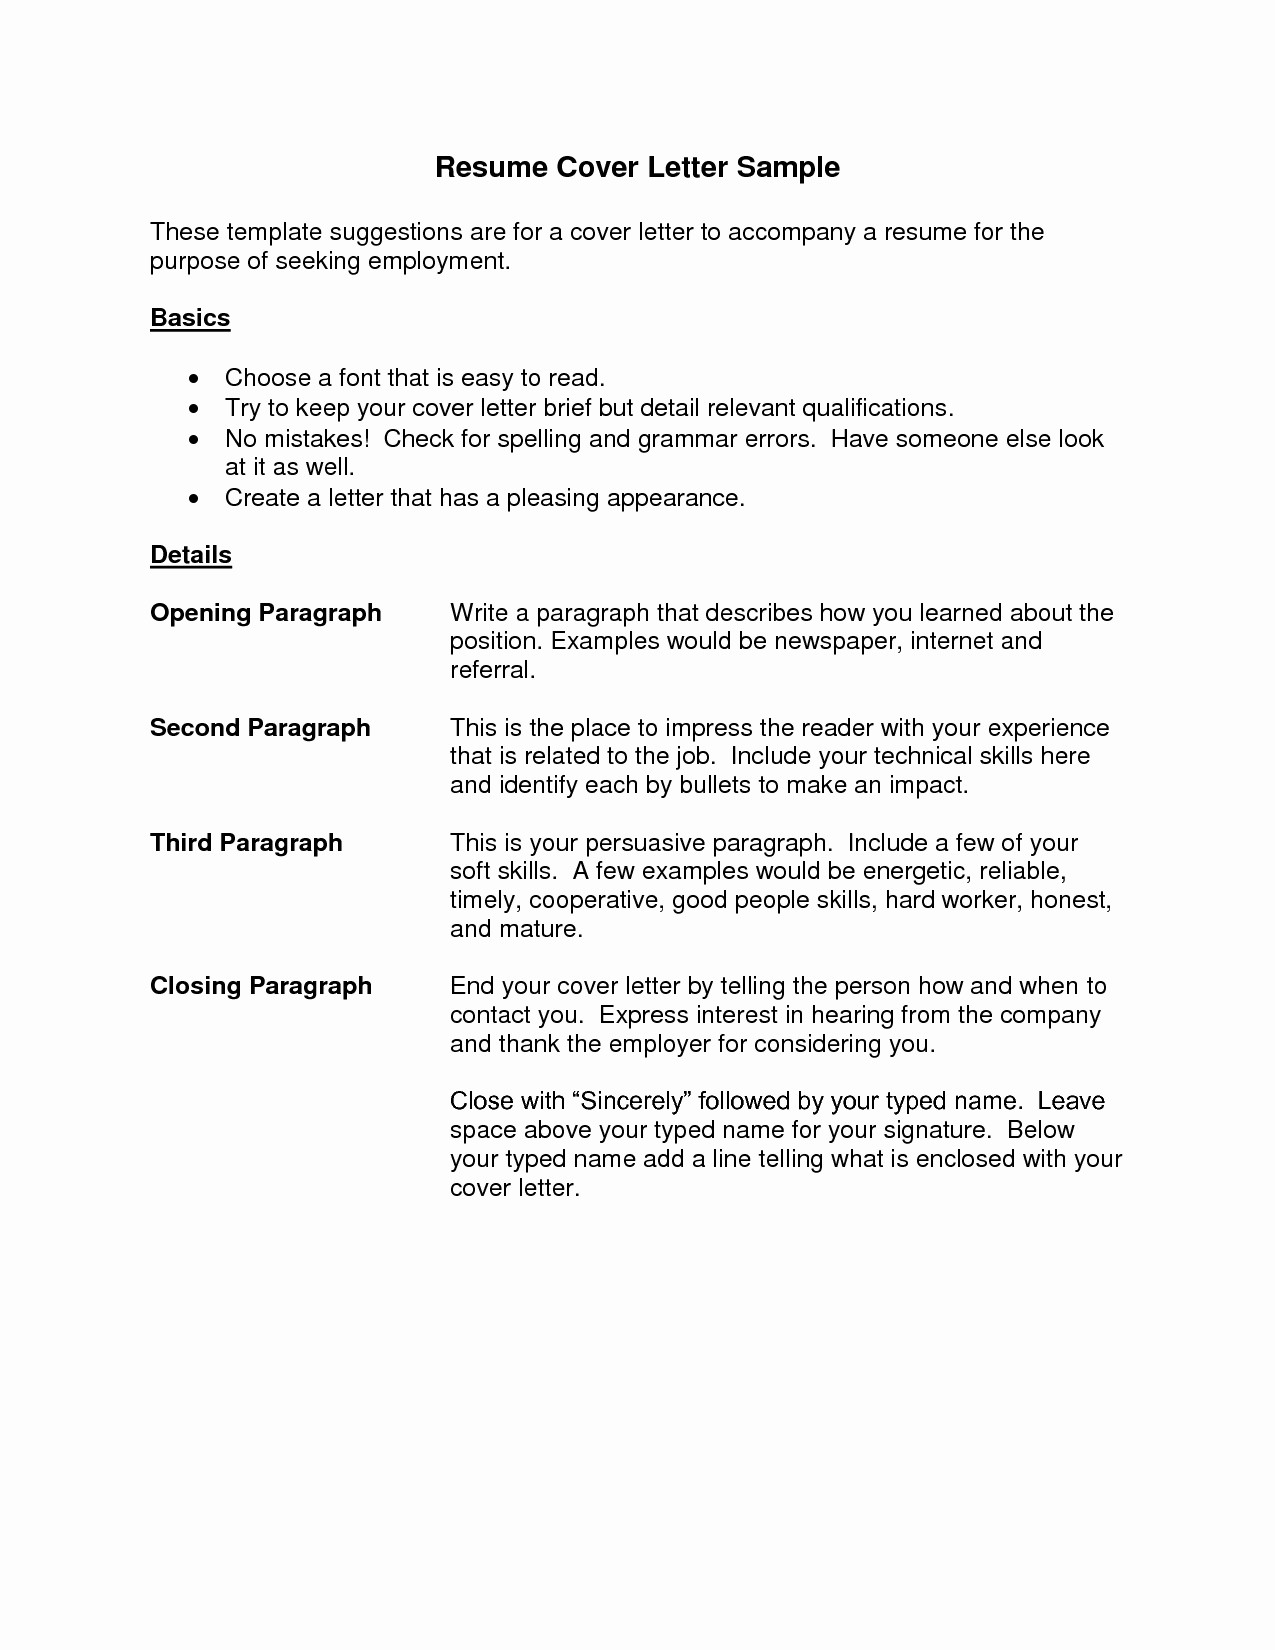 Resume and Cover Letter Templates Inspirational Example Cover Letter for Resume Template